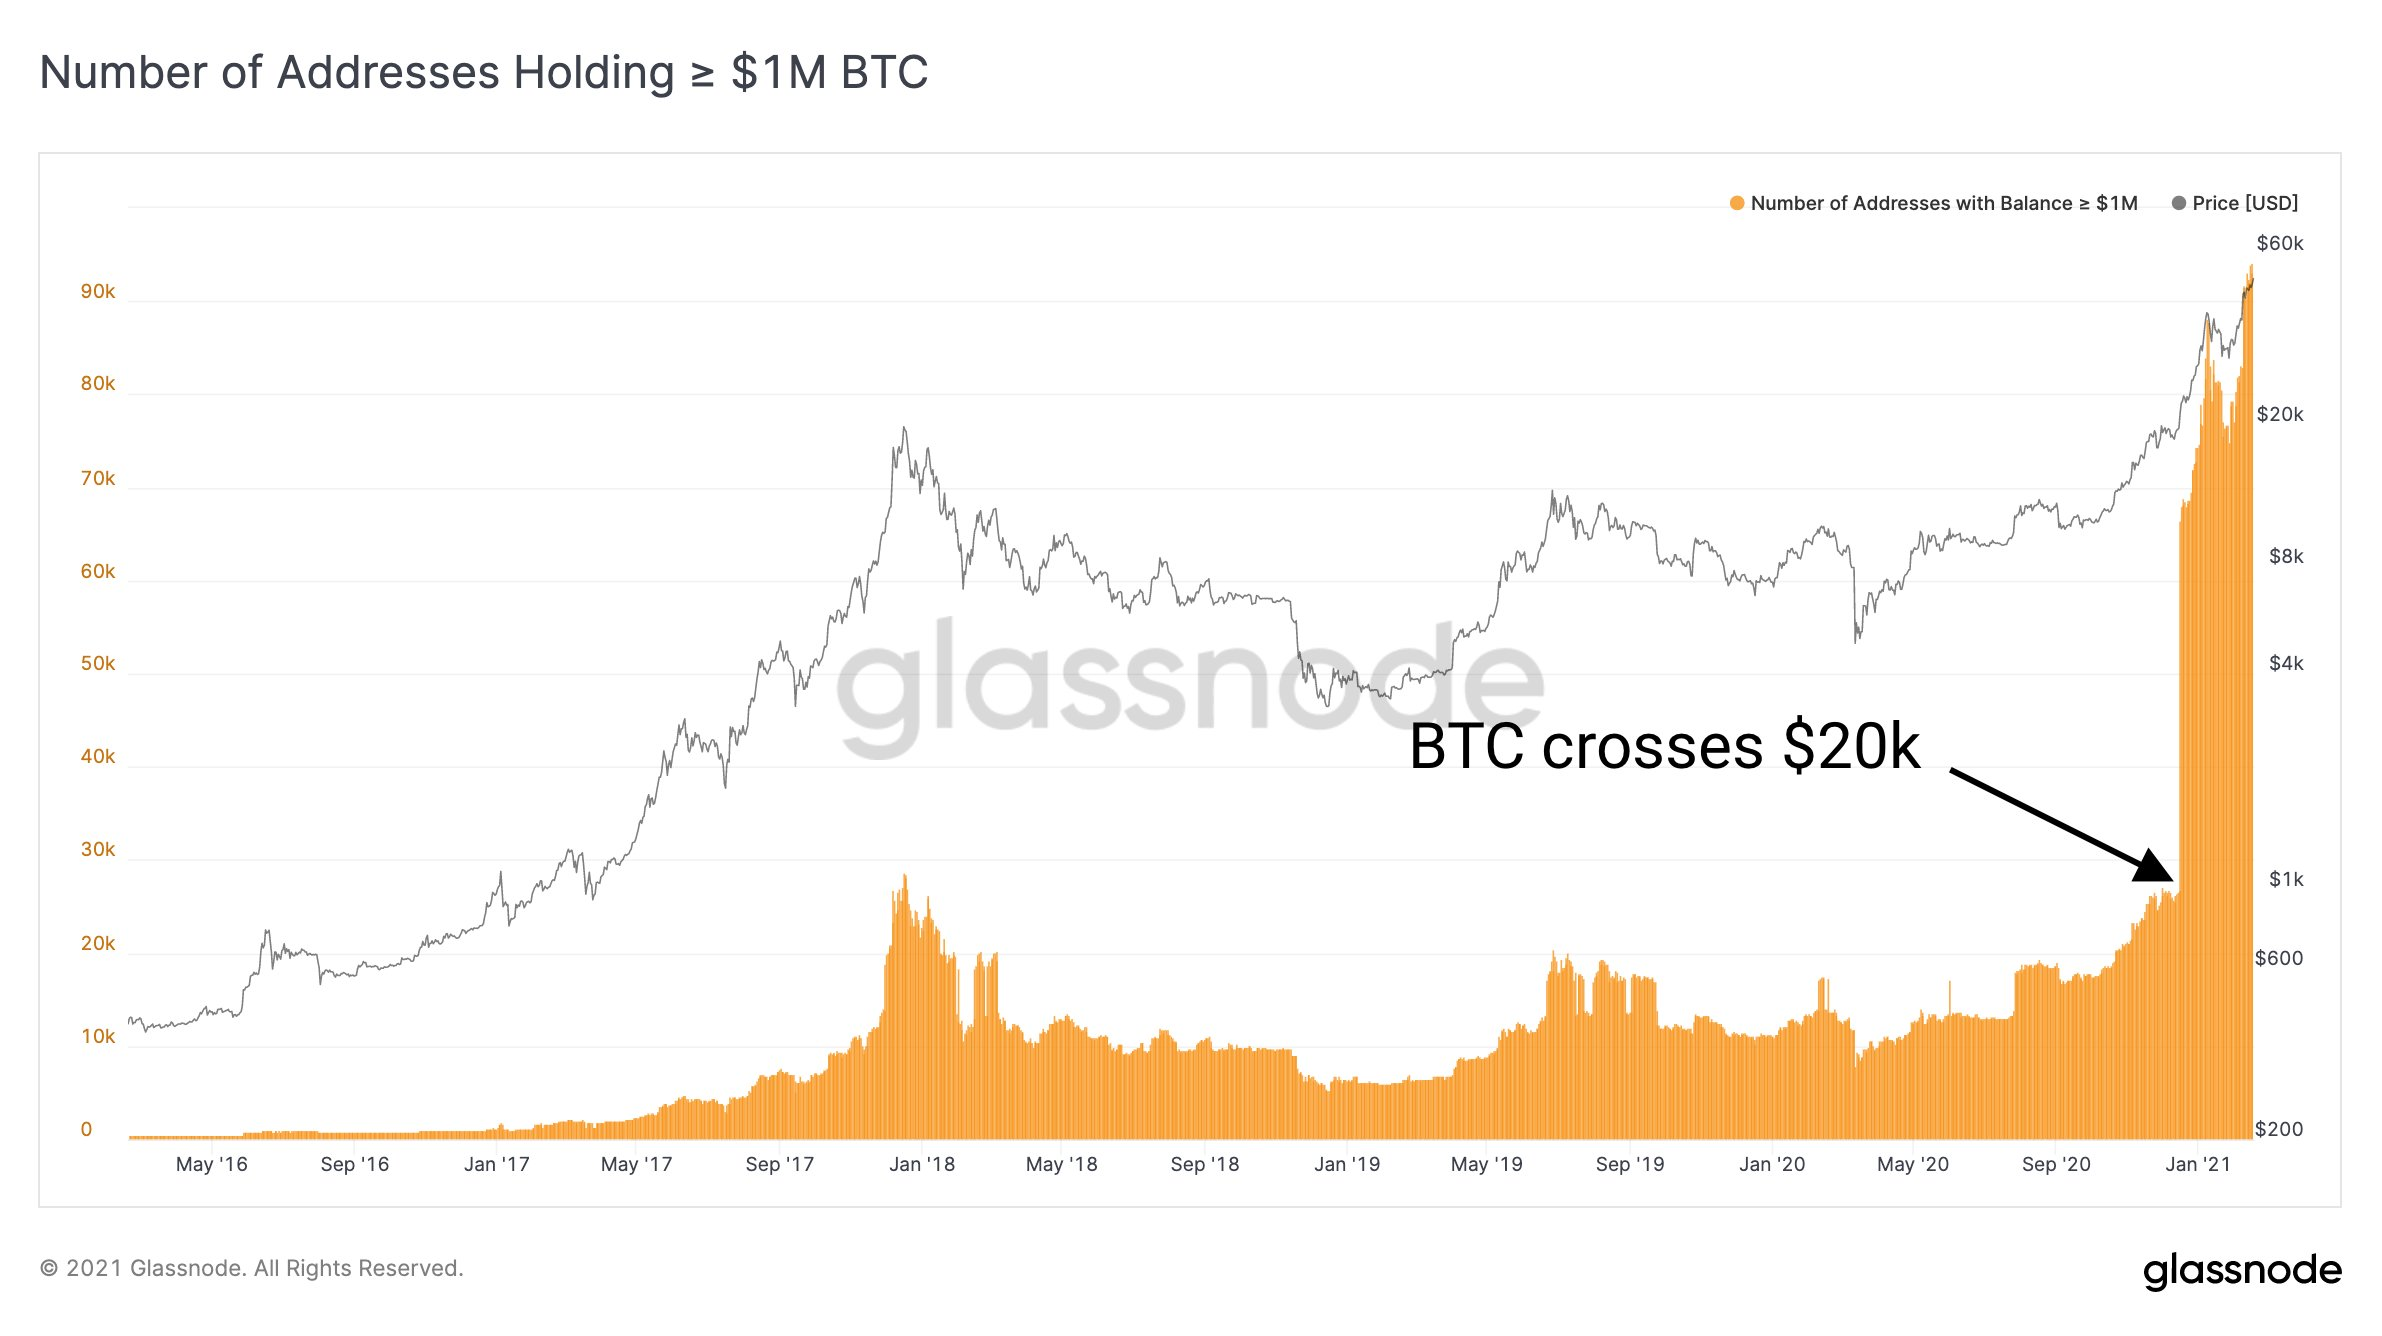 Market Research Report: Bitcoin's Tops $58,000 While Ethereum Breaks $2,000 - BTc mil address